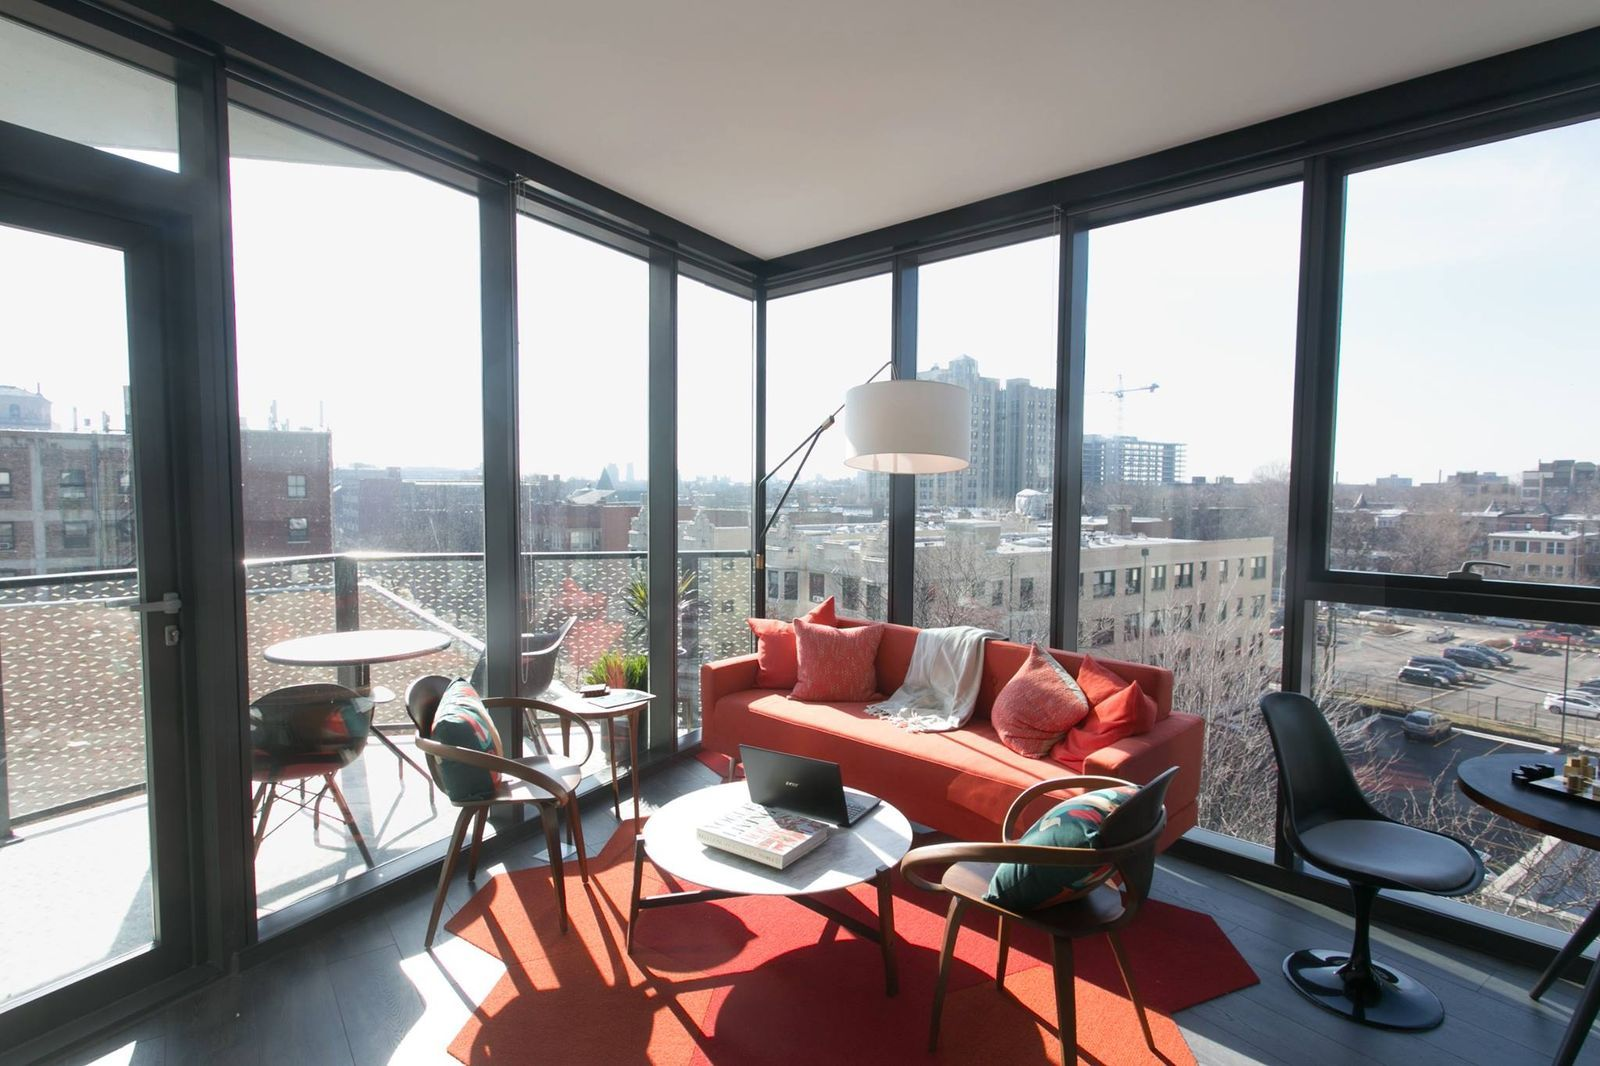 A Look At Studio Gang S Now Open City Hyde Park Apartments Hyde Park Apartments Chicago Architecture Chicago City